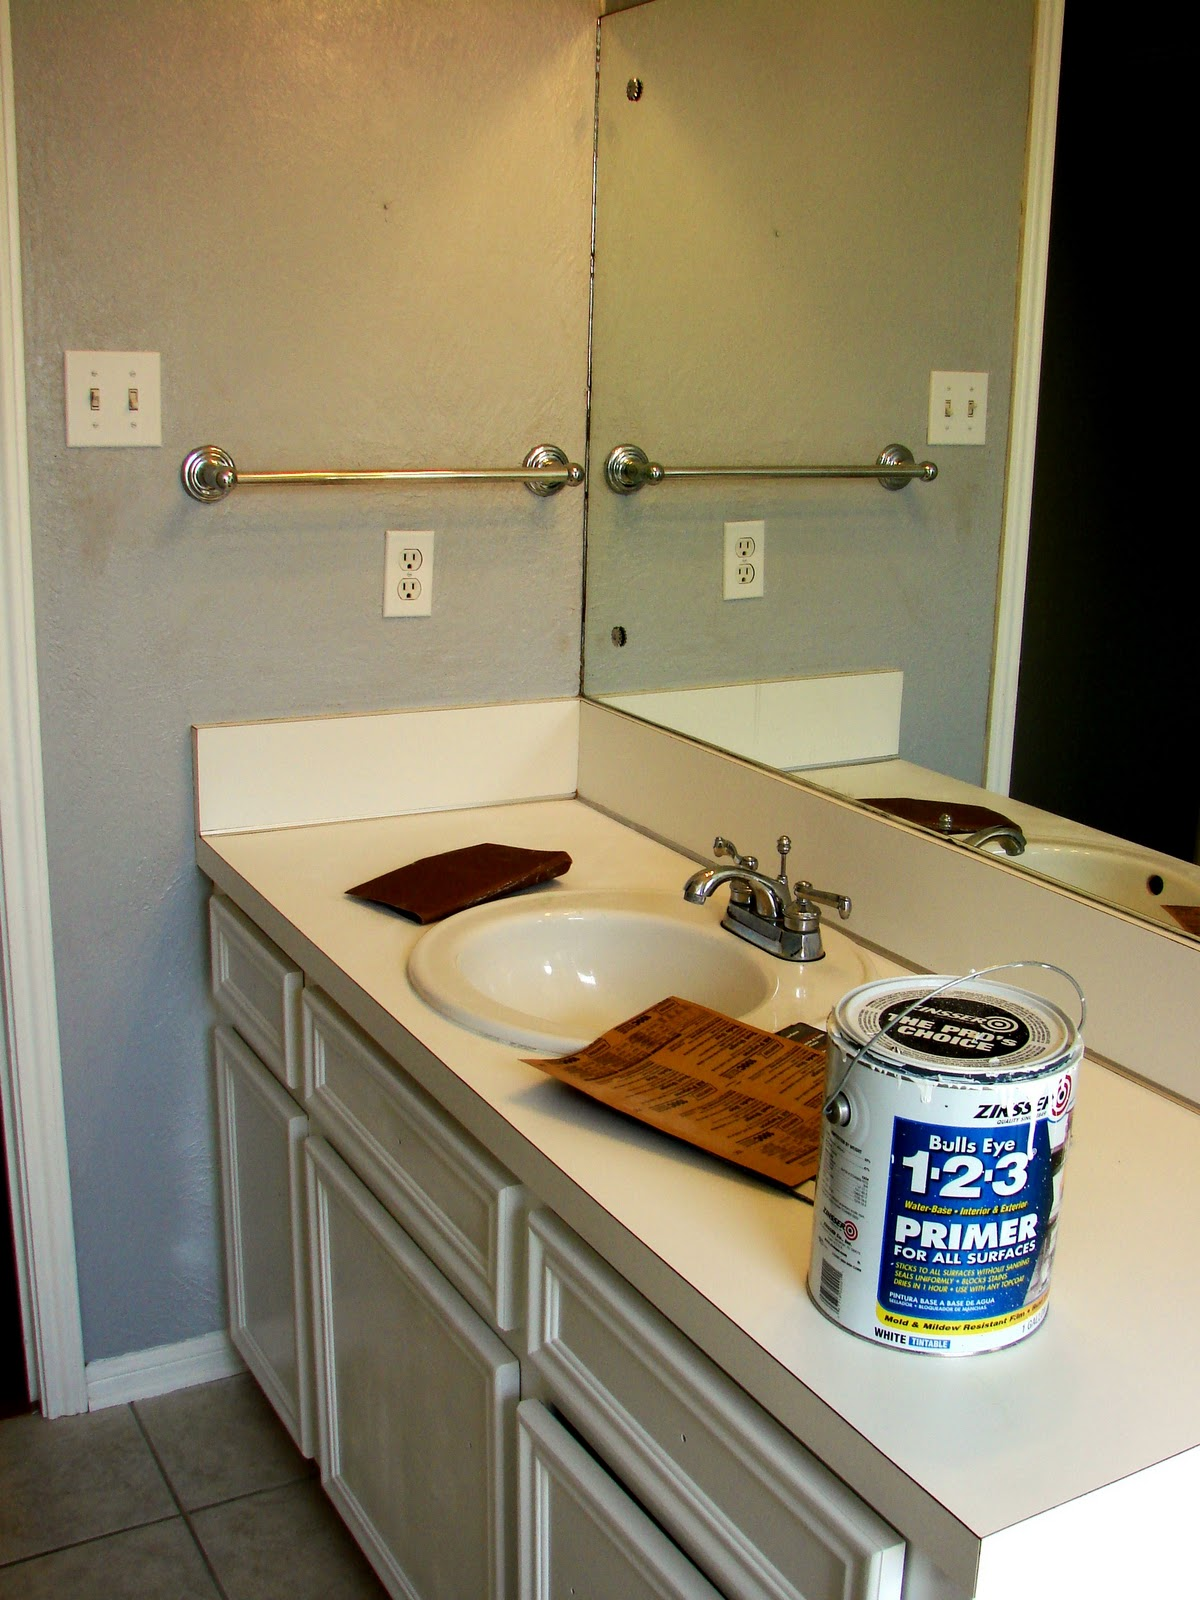 How to paint bathroom countertops - Spray Painted Bathroom Countertop